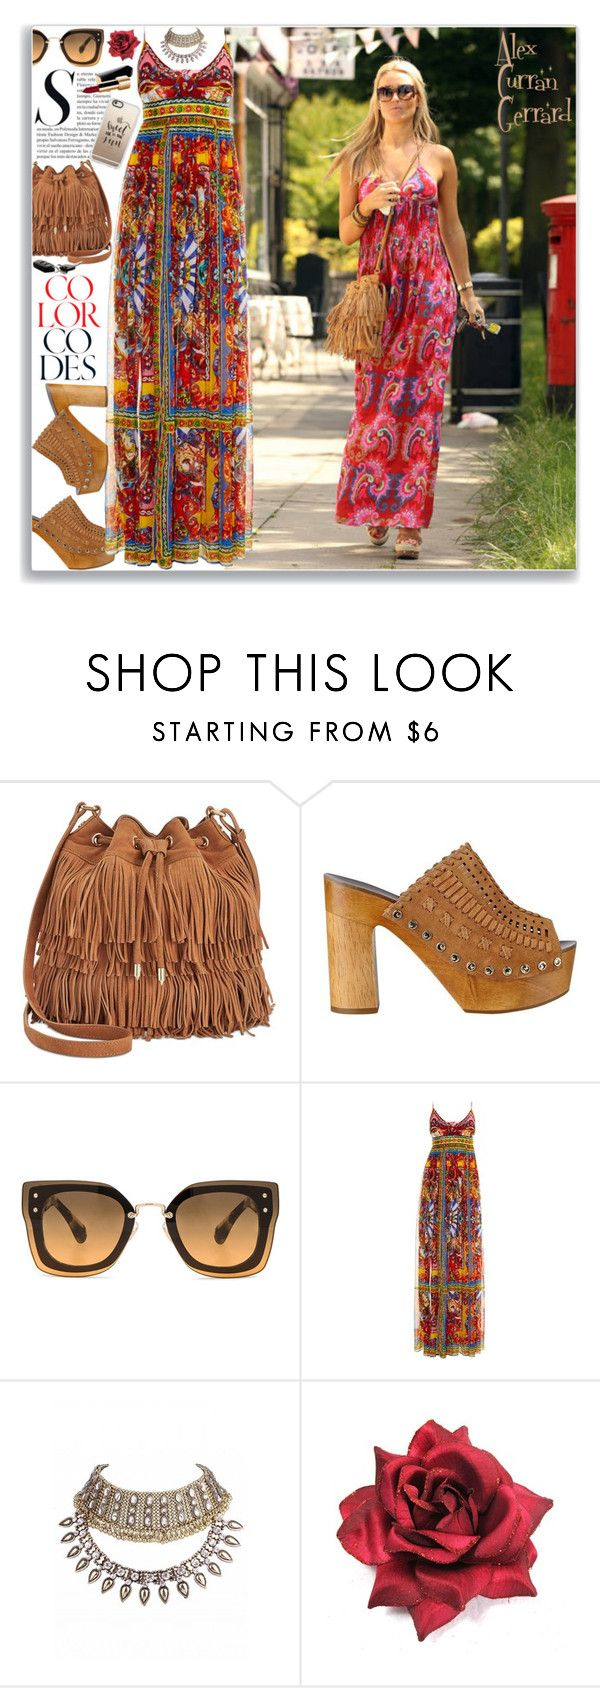 """""""Alex Curran Gerrards summer style ... from the beach to the bar"""" by firstclass1 ❤ liked on Polyvore featuring Sam Edelman, Sigerson Morrison, Miu Miu, Dolce&Gabbana, Casetify and Chanel"""